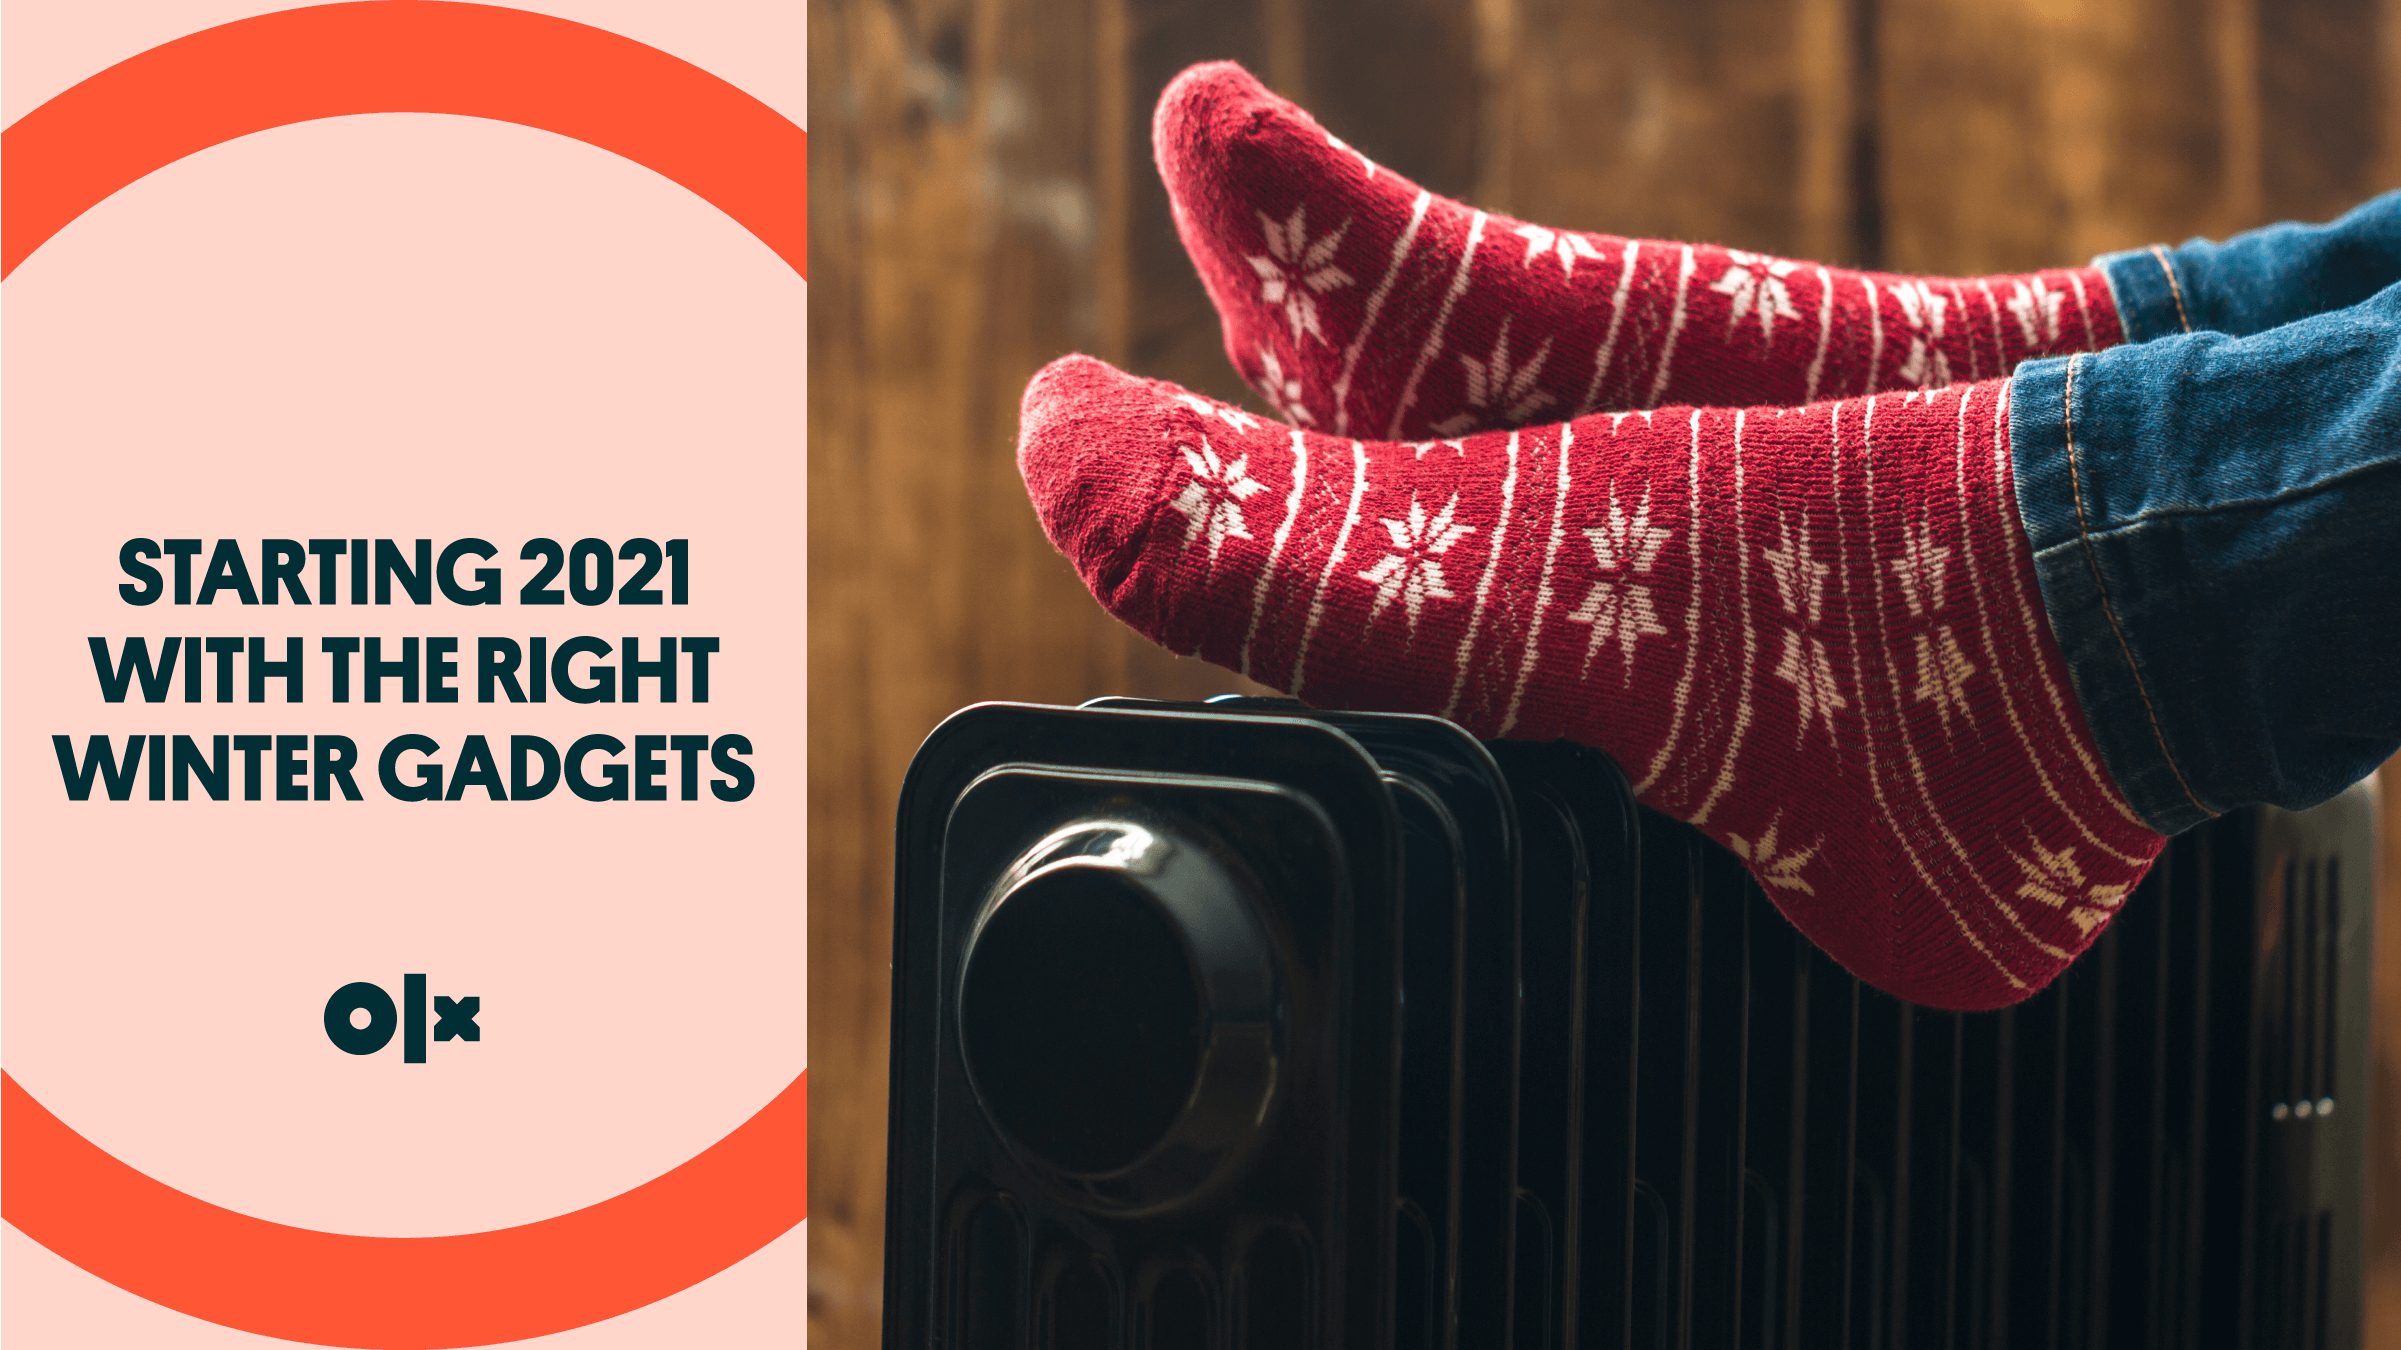 Starting 2021 With the Right Winter Gadgets